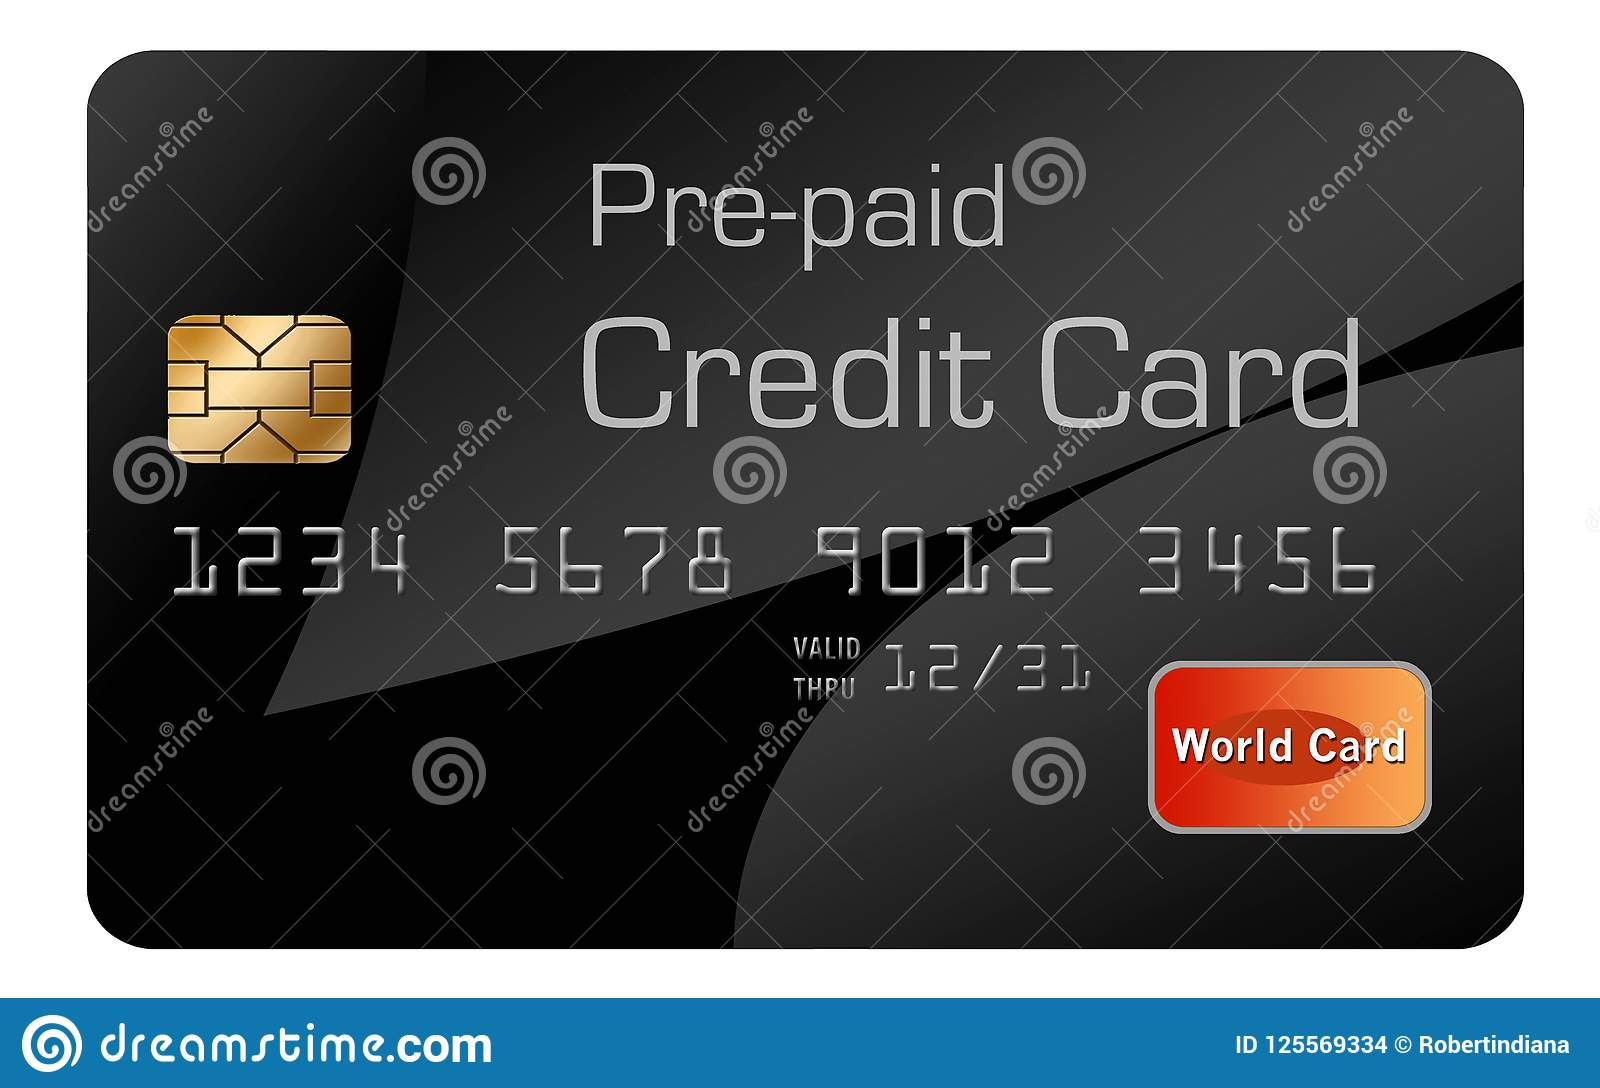 Prepaid Credit Cards >> This Is A Prepaid Credit Card Collateralized Credit Card